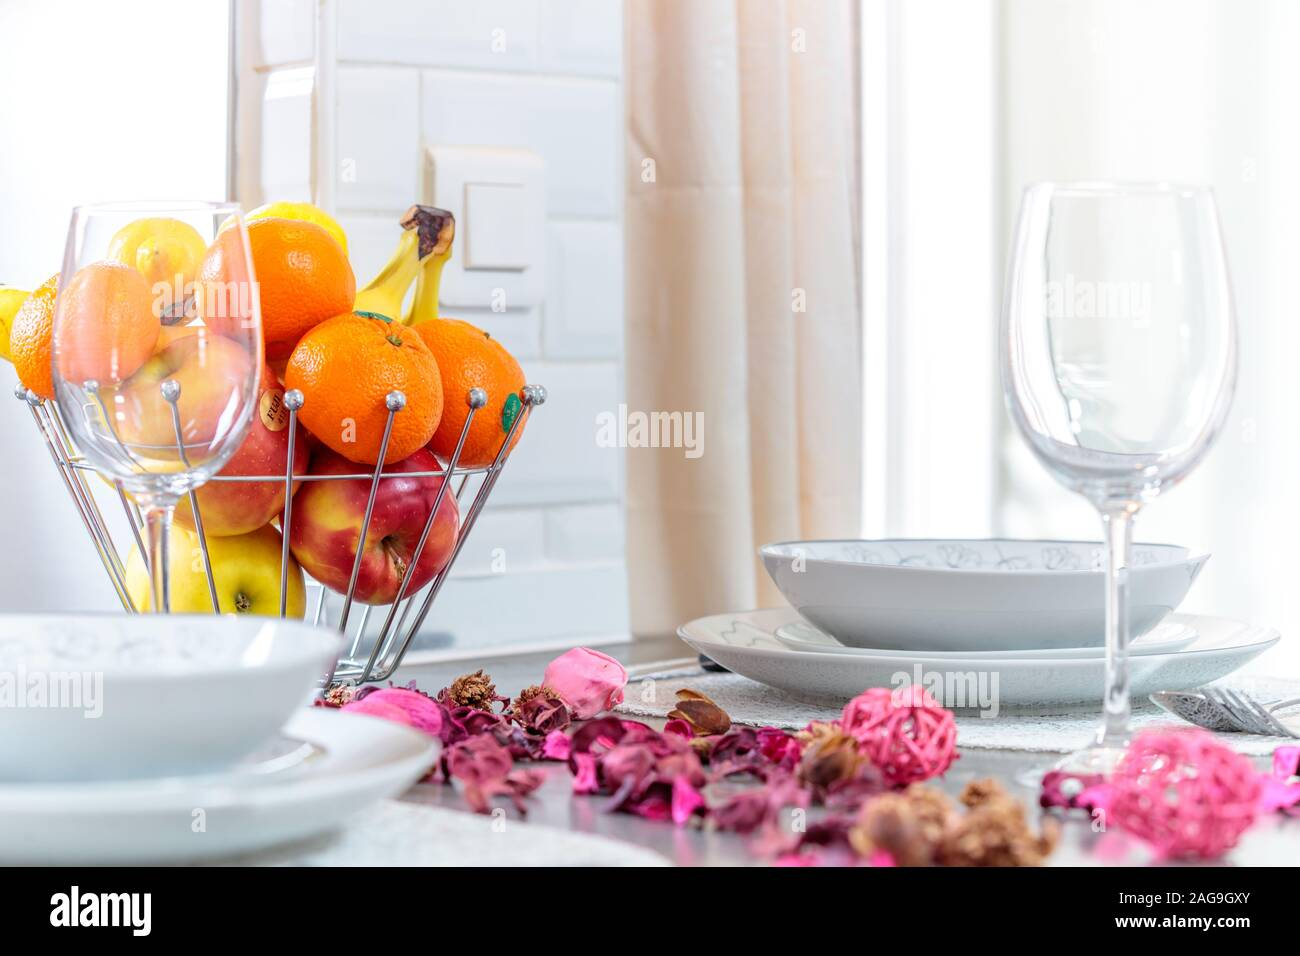 Selective focus shot of a modern table setting with flower petals, fruit and beautiful silverware Stock Photo